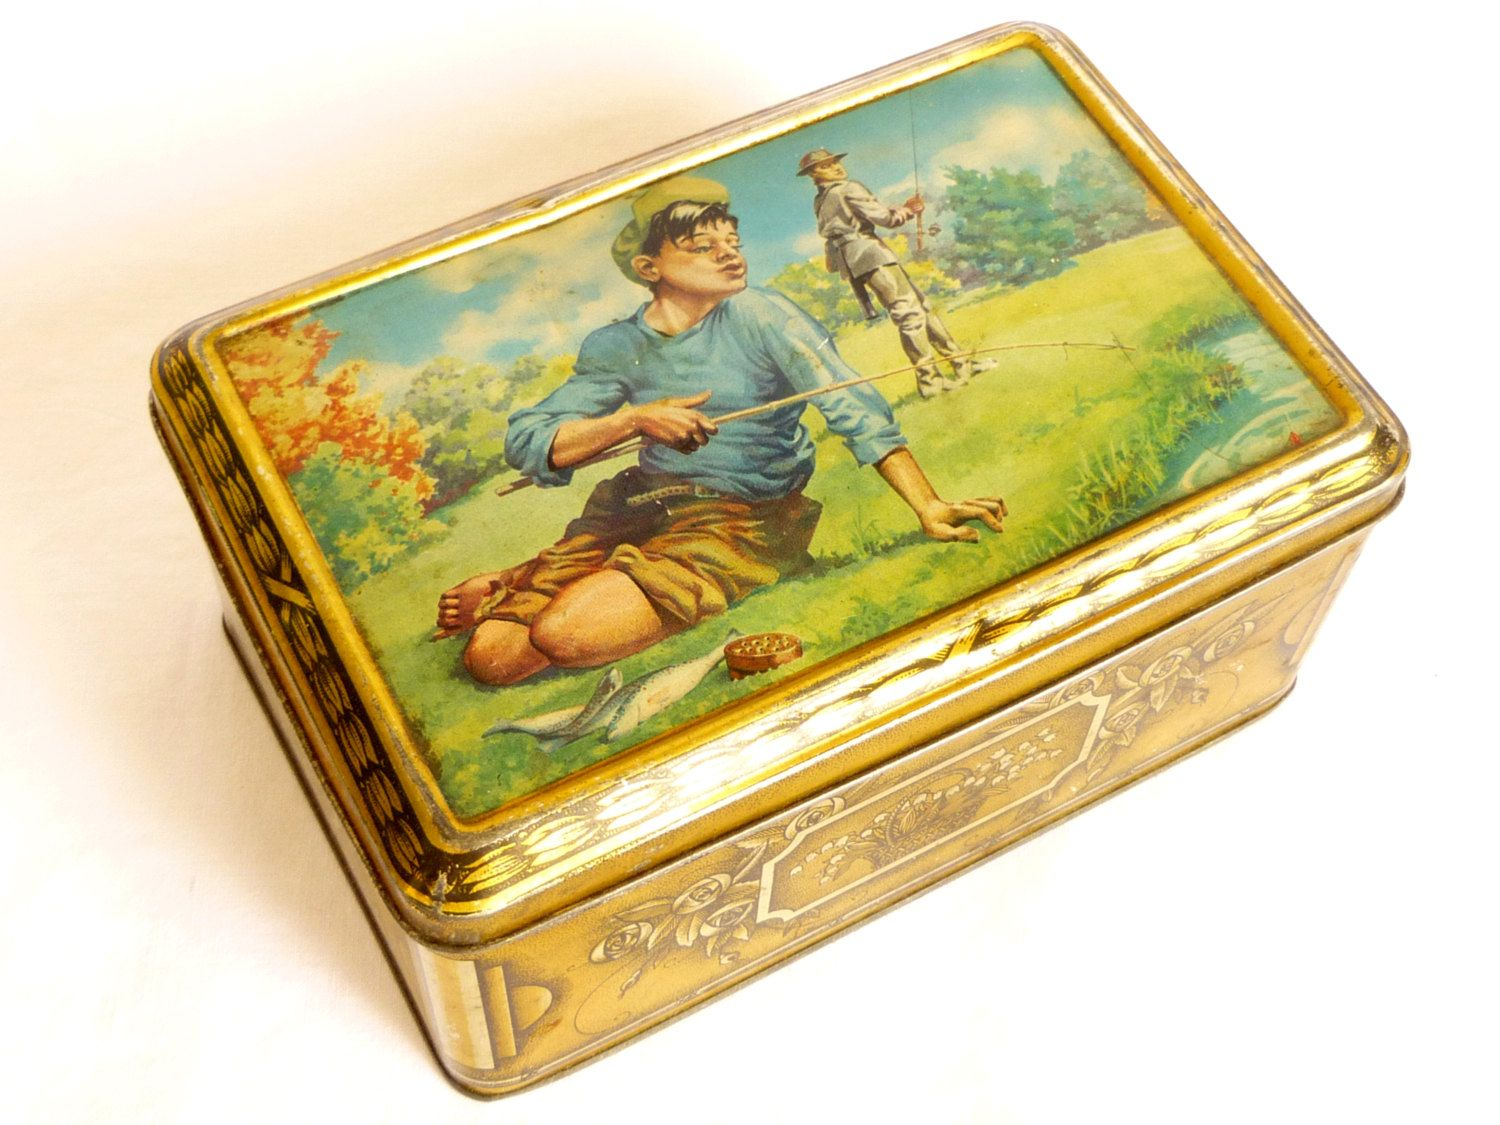 Boite Metal Cuisine Vintage Vintage 1940 Campaign Fishermen Box Antique Cake Storage Box